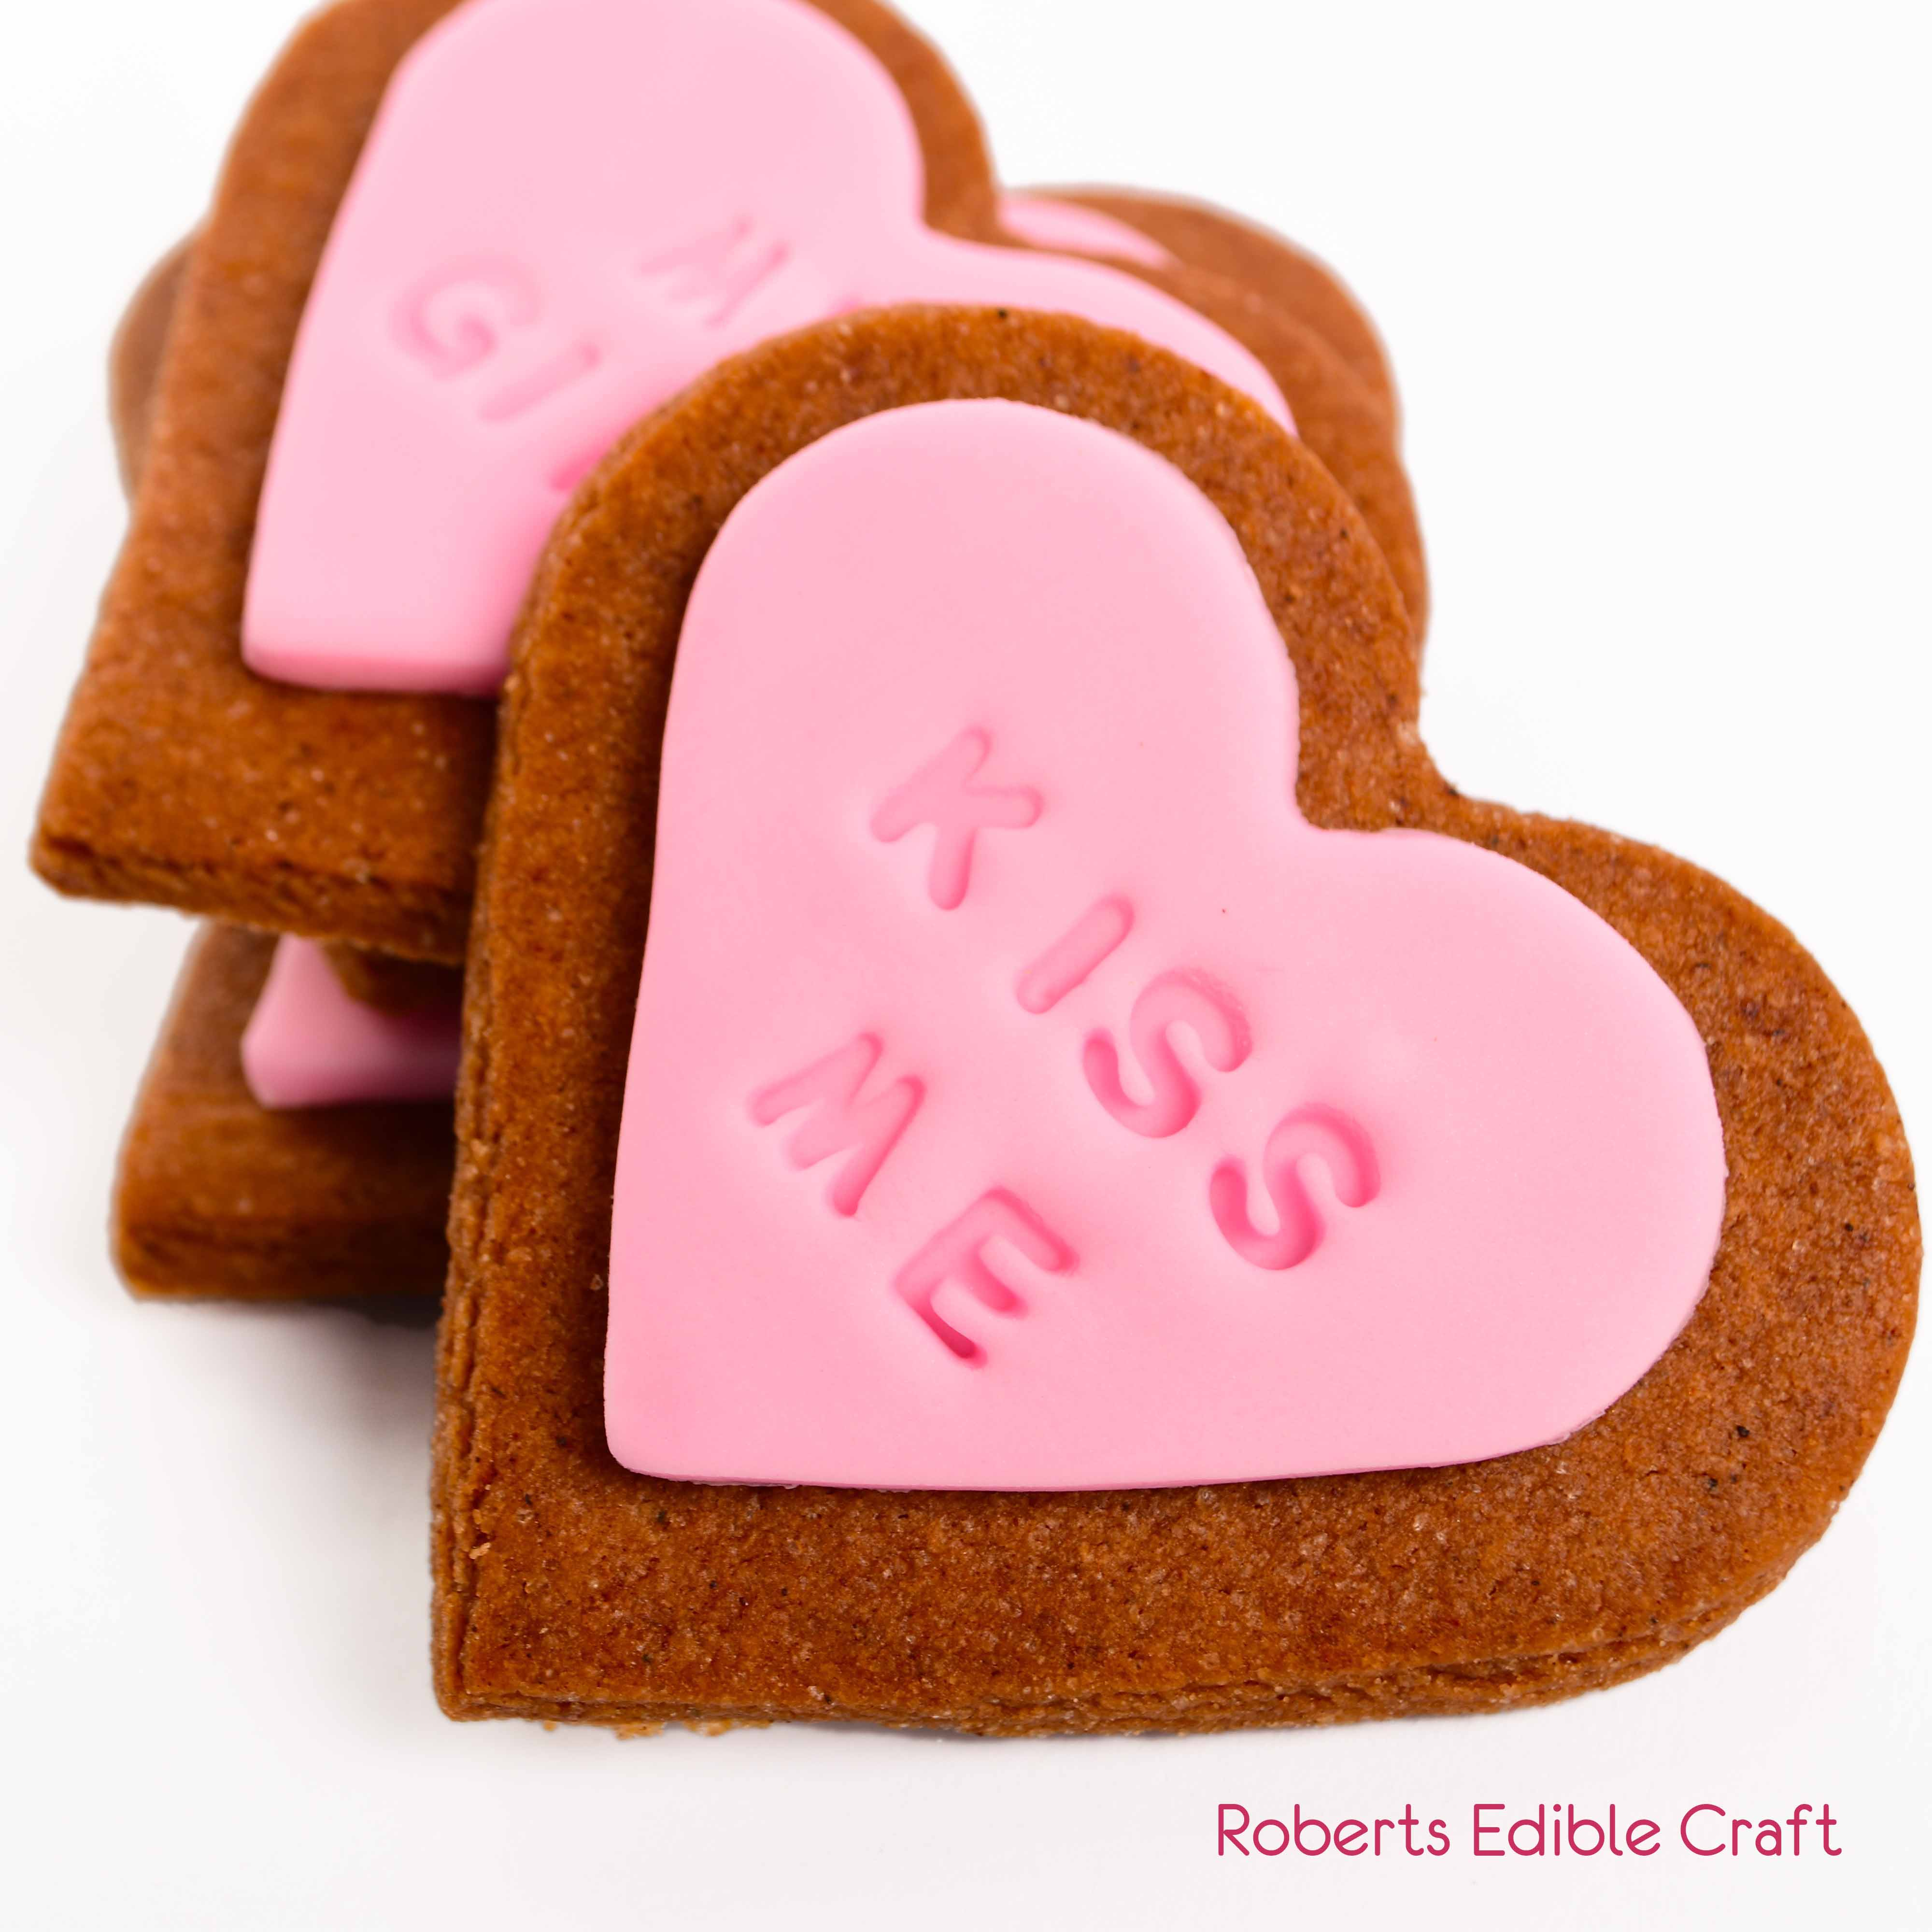 valentine-message-cookie-030.jpg